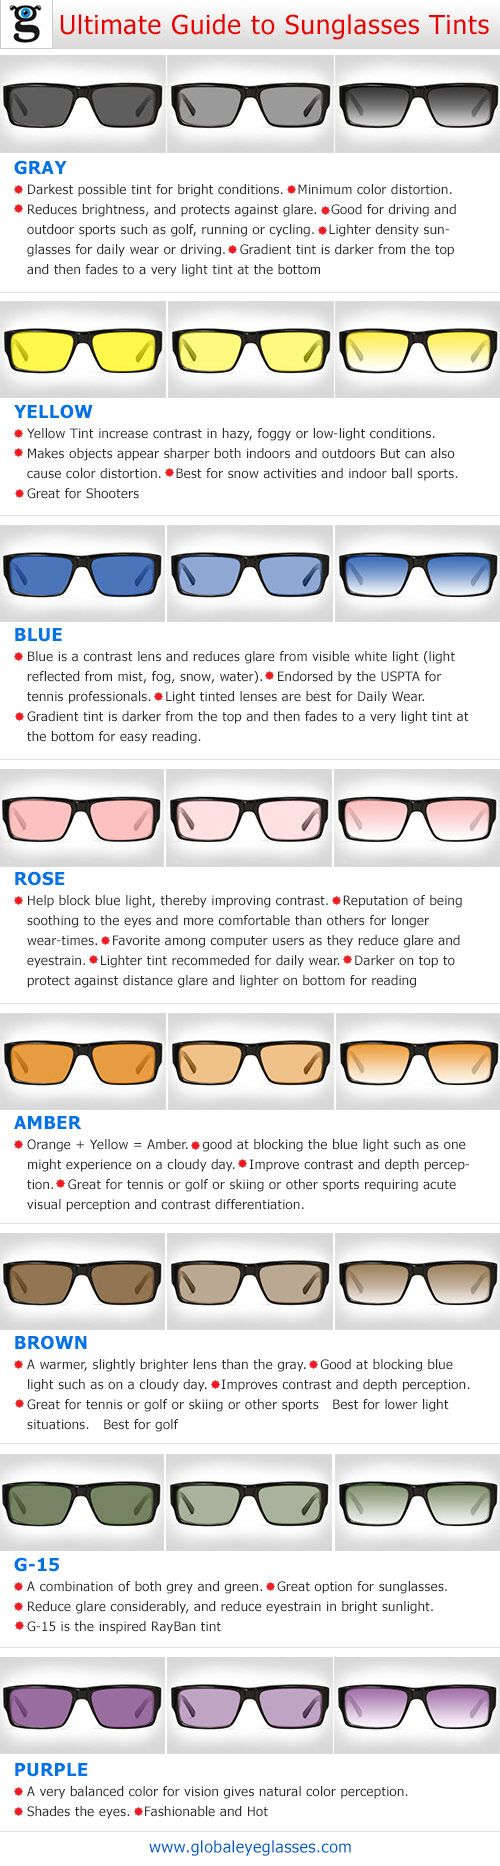 Choosing the right sunglass tint. GlobalEyeglasses.com presents ultimate guide to Sunglass Tints.